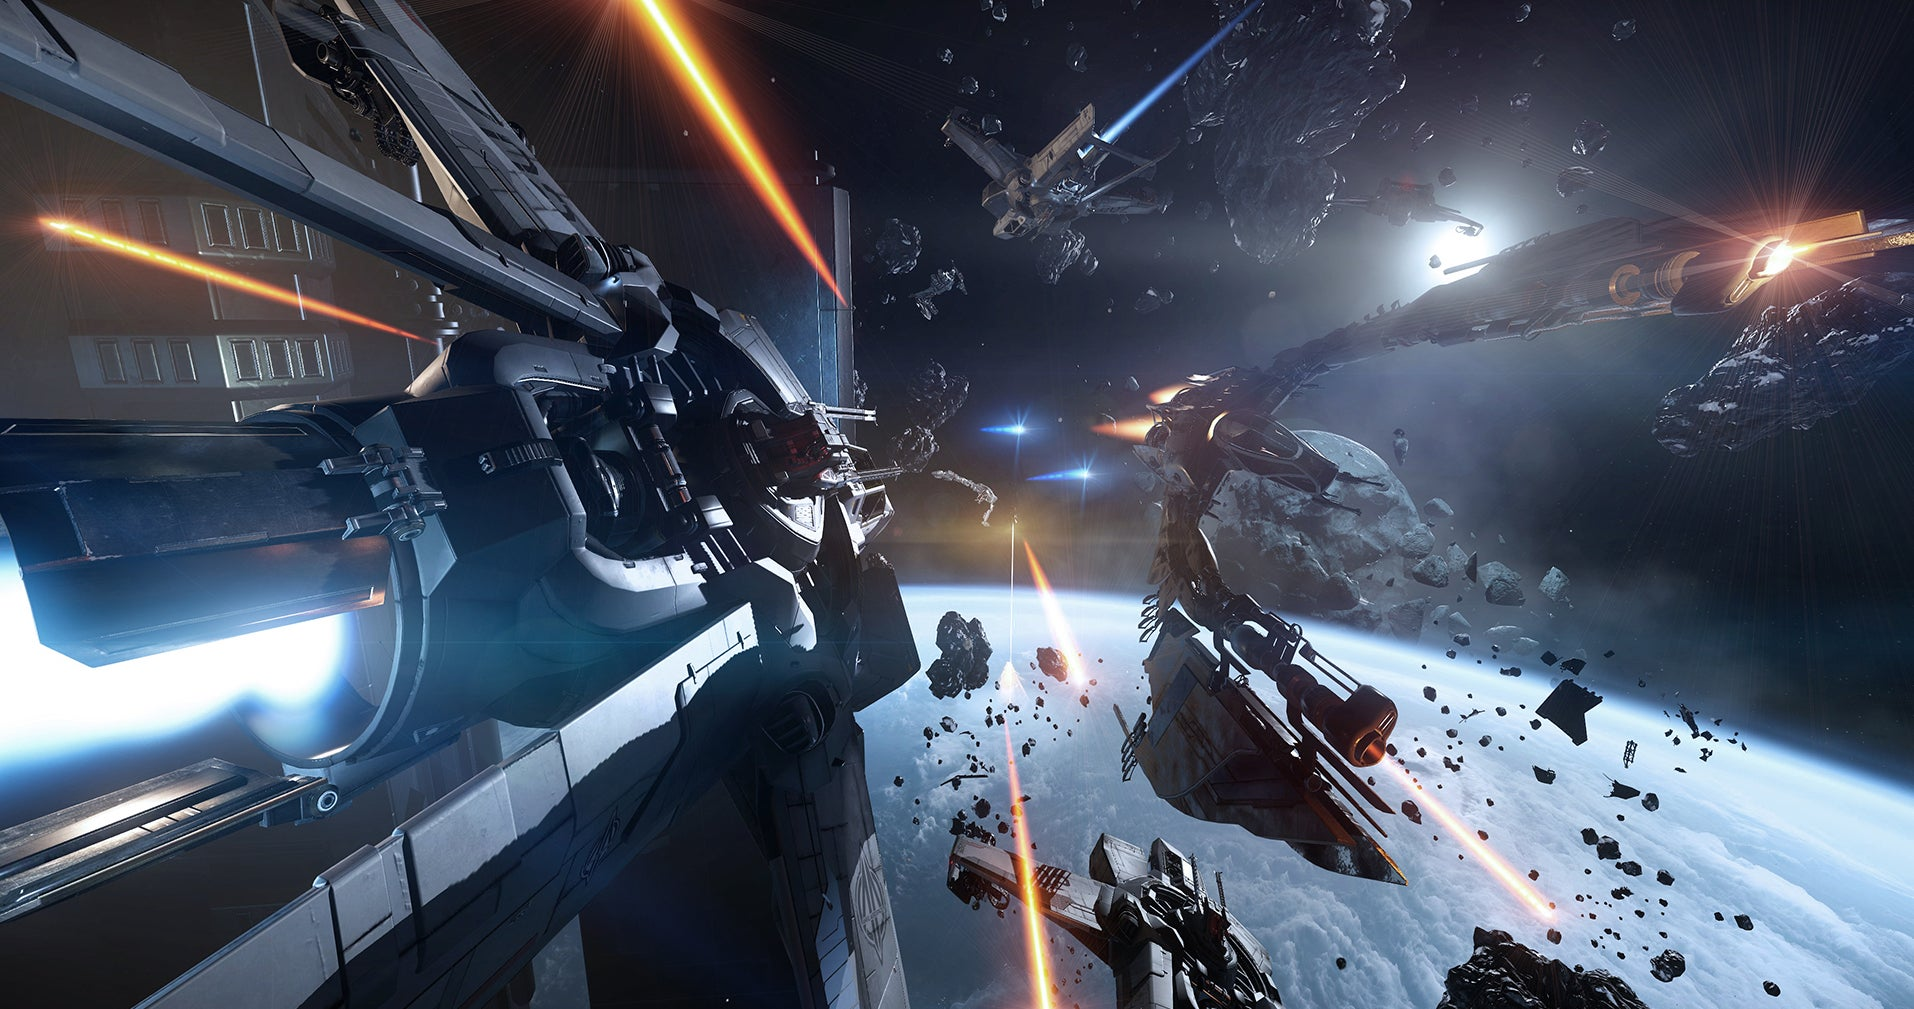 Crytek is suing the developers behind sci-fi title Star Citizen